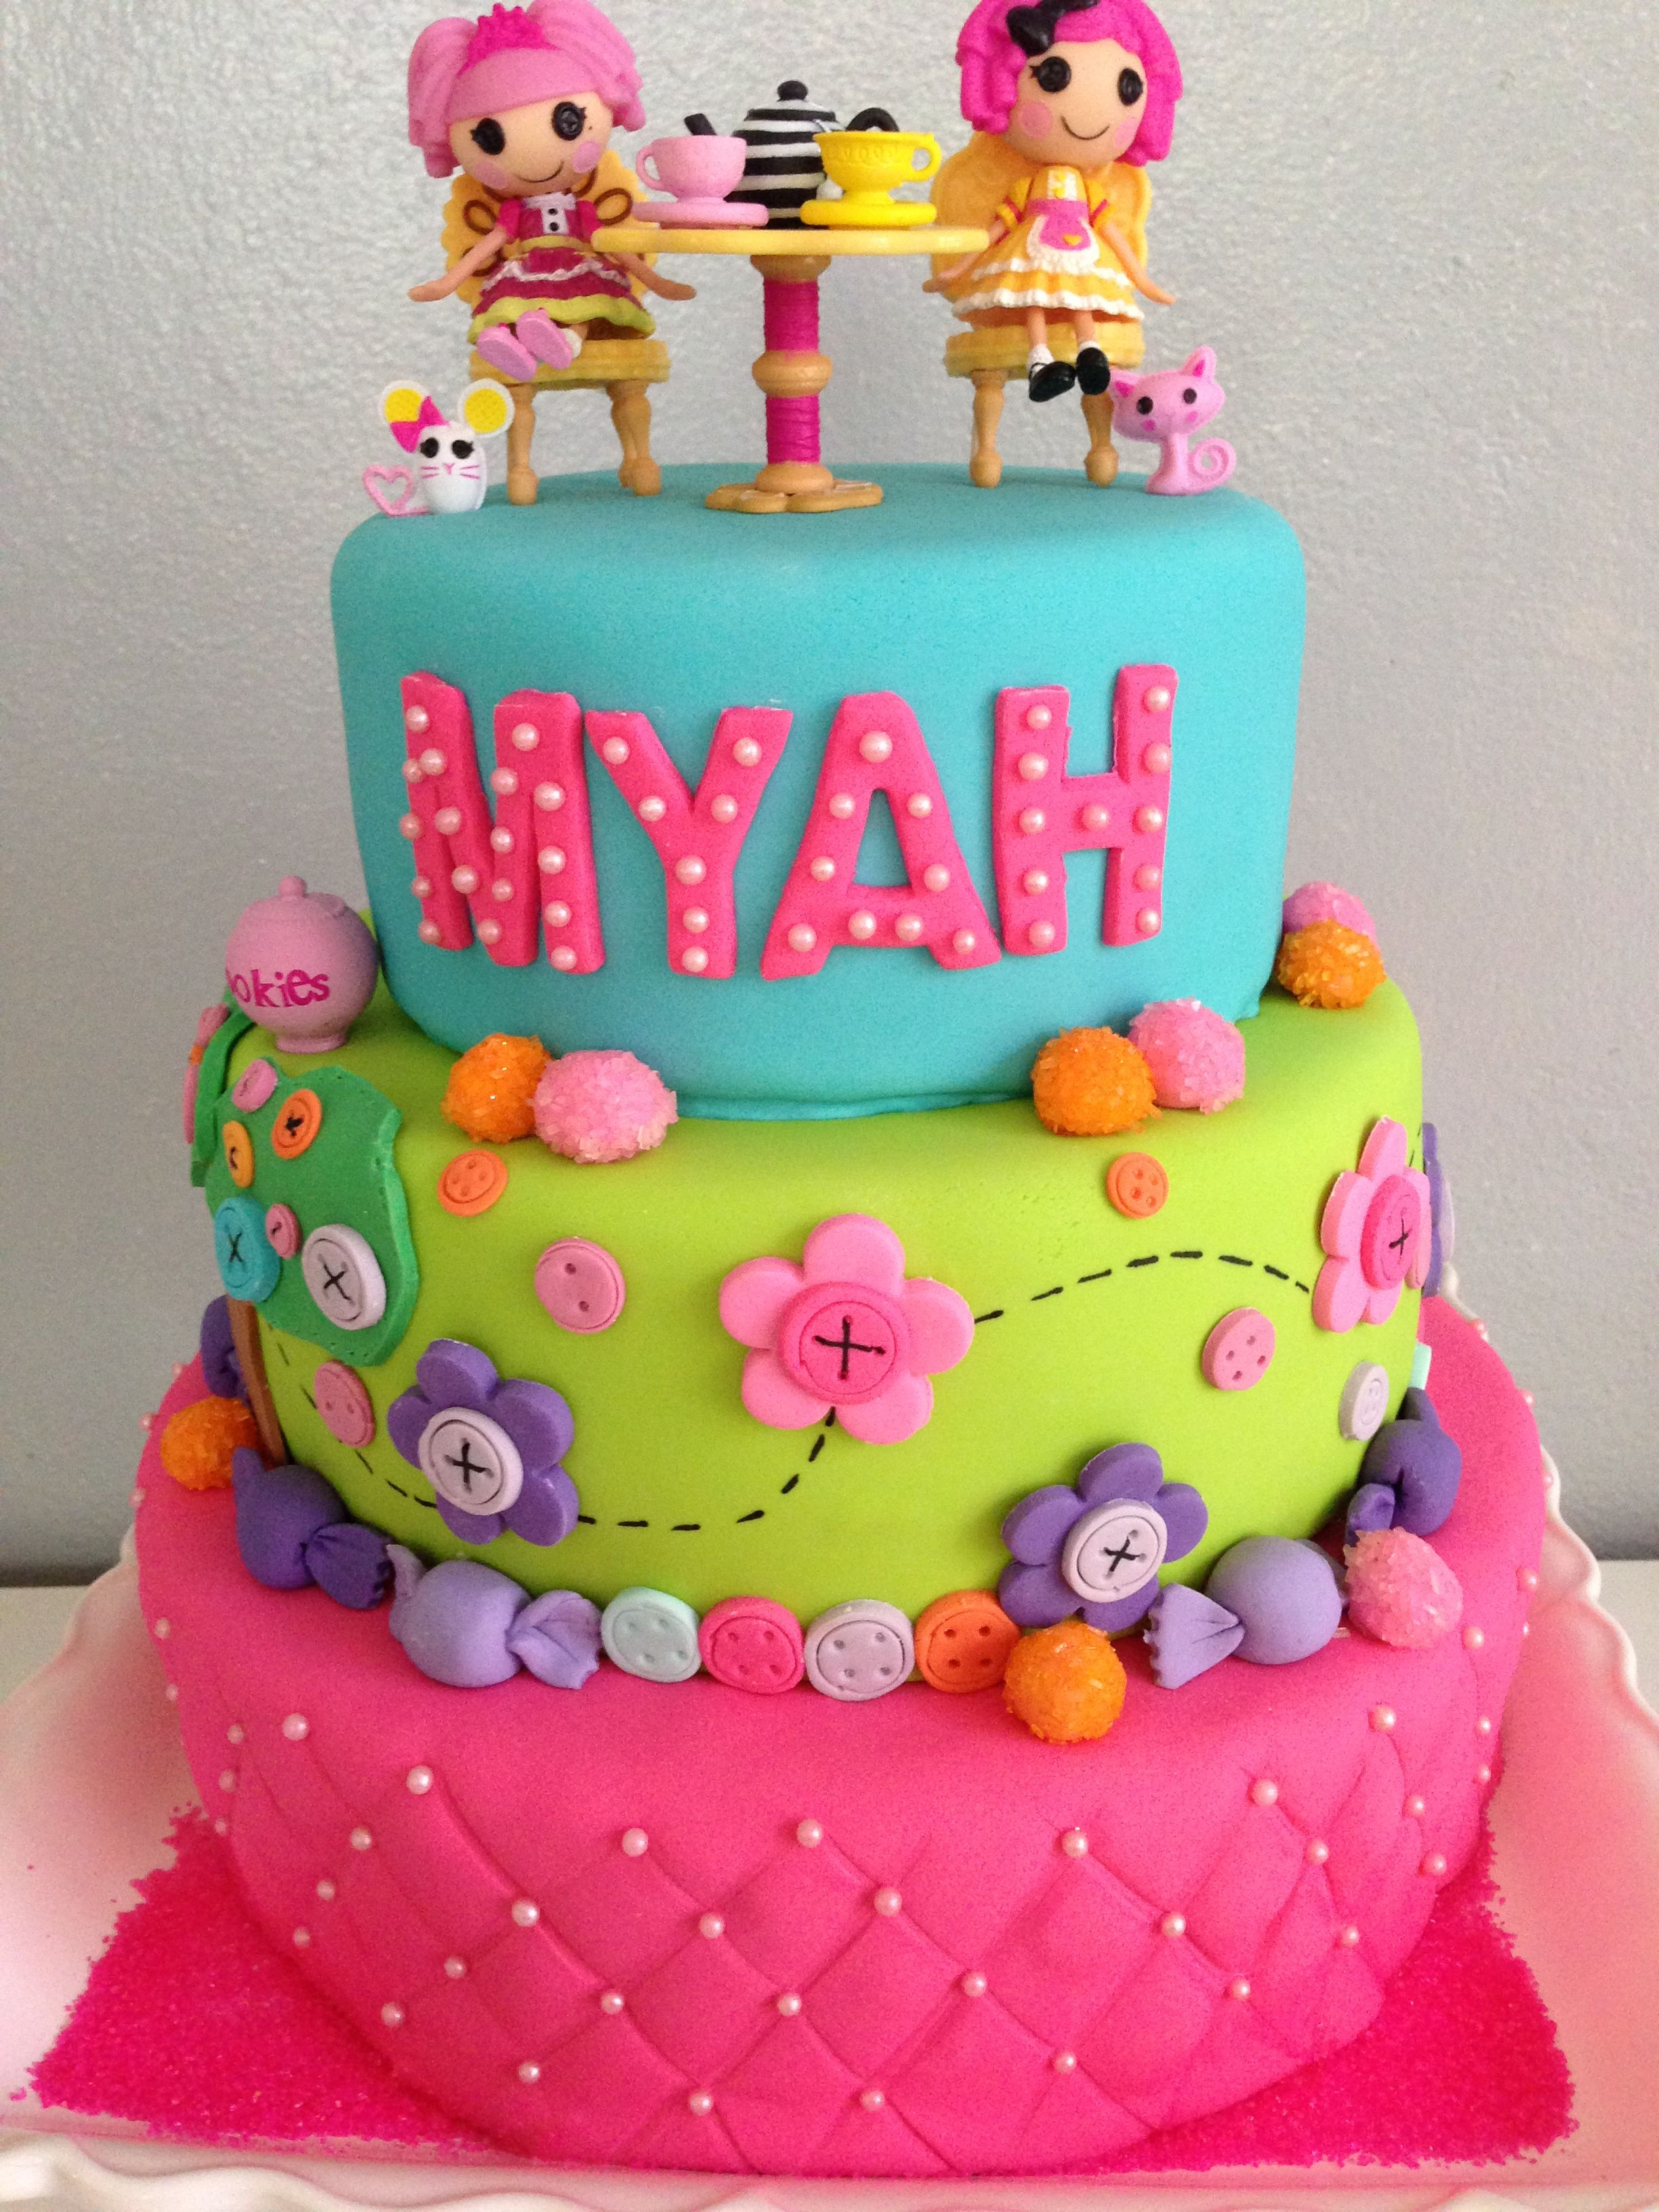 Wondrous Pin Lalaloopsy Birthday Cake Cakes Picture To Pinterest Cakepins Personalised Birthday Cards Rectzonderlifede